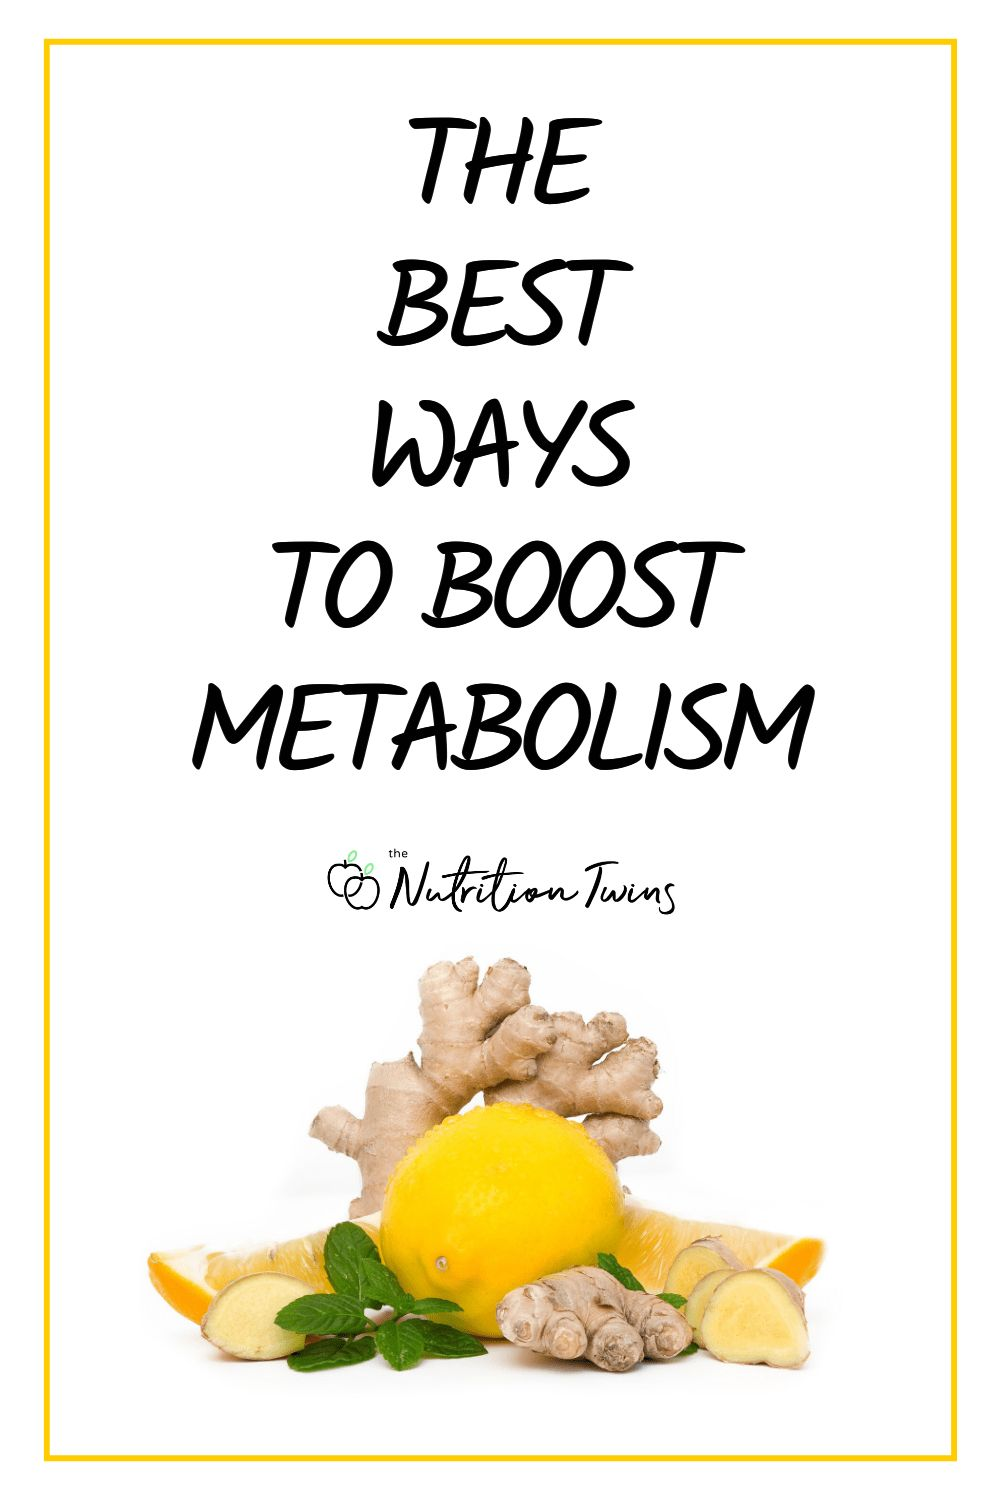 The Best Ways to Boost Metabolism. If you want to lose weight fast, safely and permanently and get a flat belly, try these simple ways to speed up your metabolism. It's more than flat belly foods, it's things you can do on top of your flat belly workout plan to burn more fat. #metabolism #loseweight #flatbelly For MORE RECIPES, fitness & nutrition tips please SIGN UP for our FREE NEWSLETTER www.NutritionTwins.com